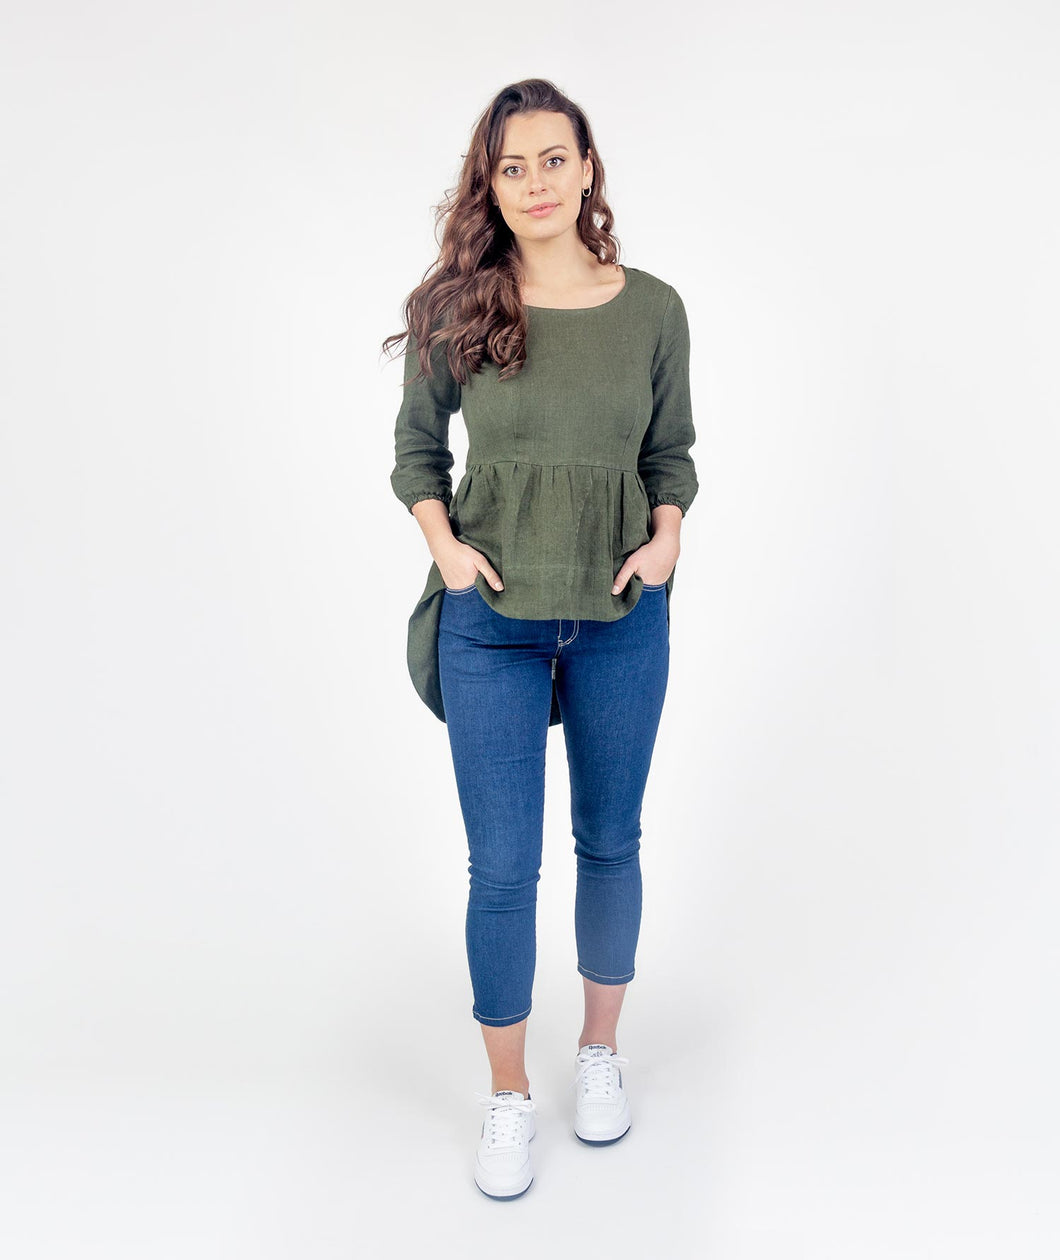 Holi Boli, Earth Explorer Top, Top, ethical fashion